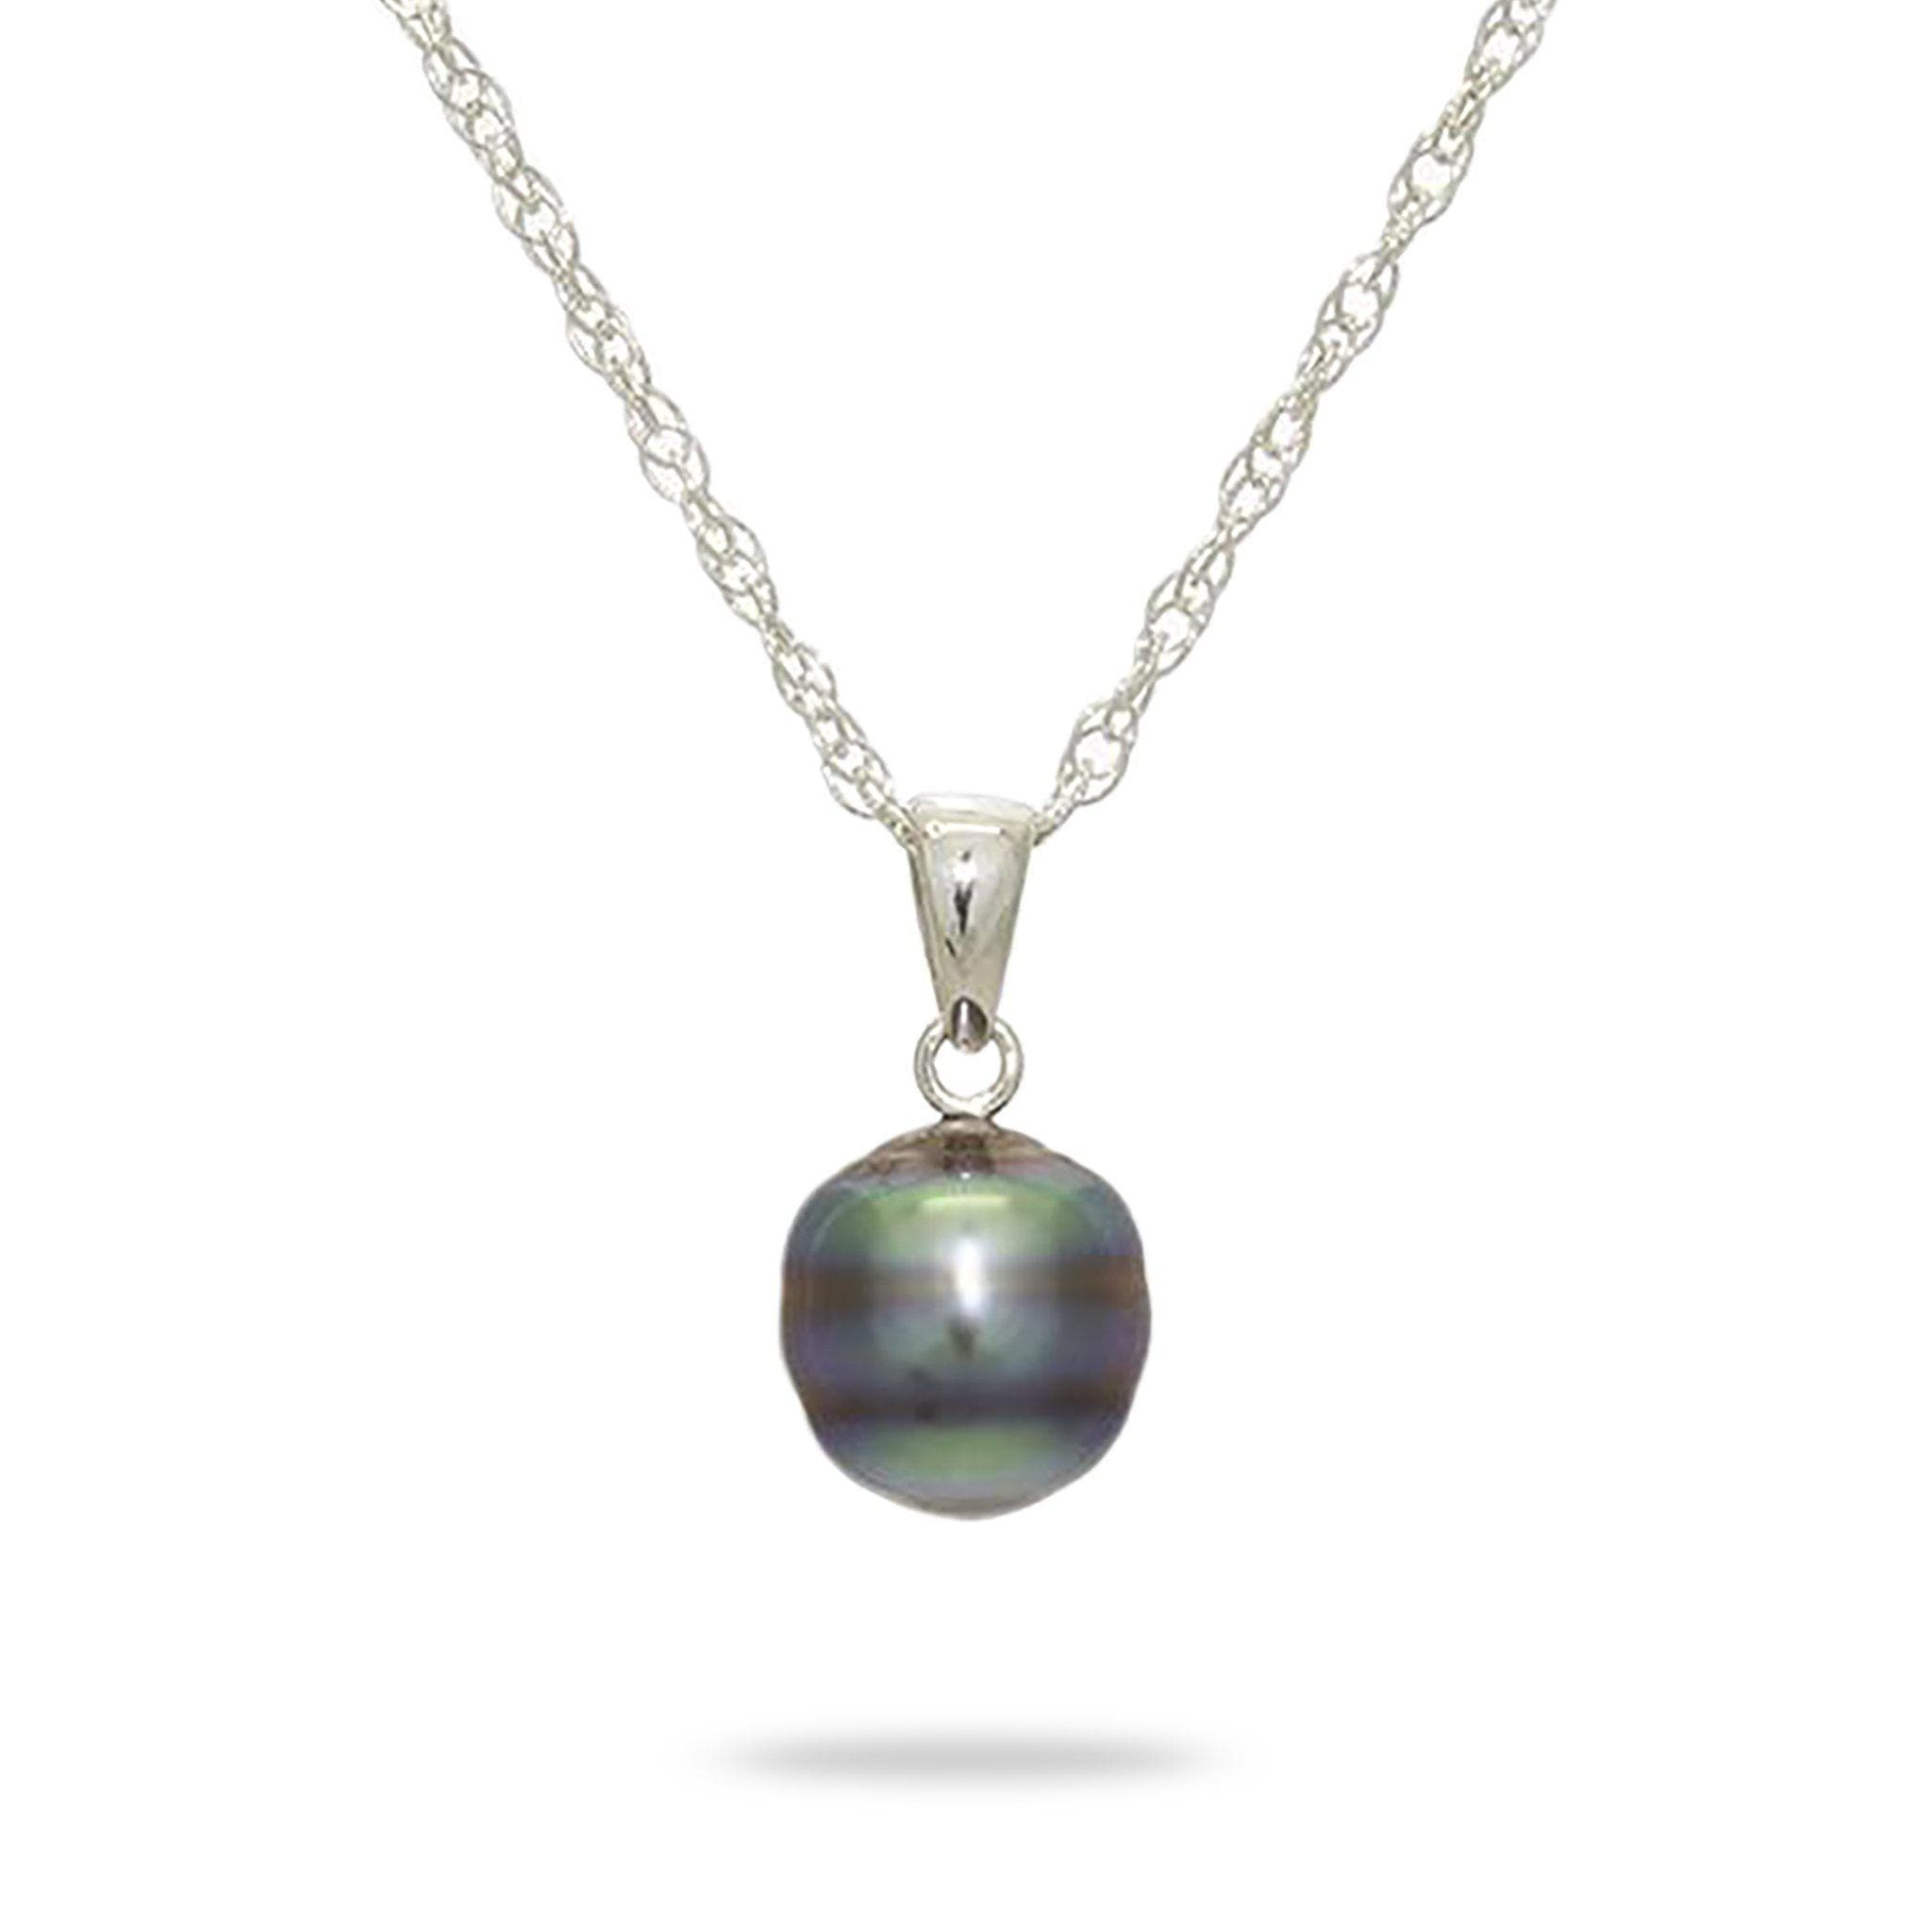 305489bede4 Tahitian Black Pearl Necklace in Sterling Silver (8-10mm)